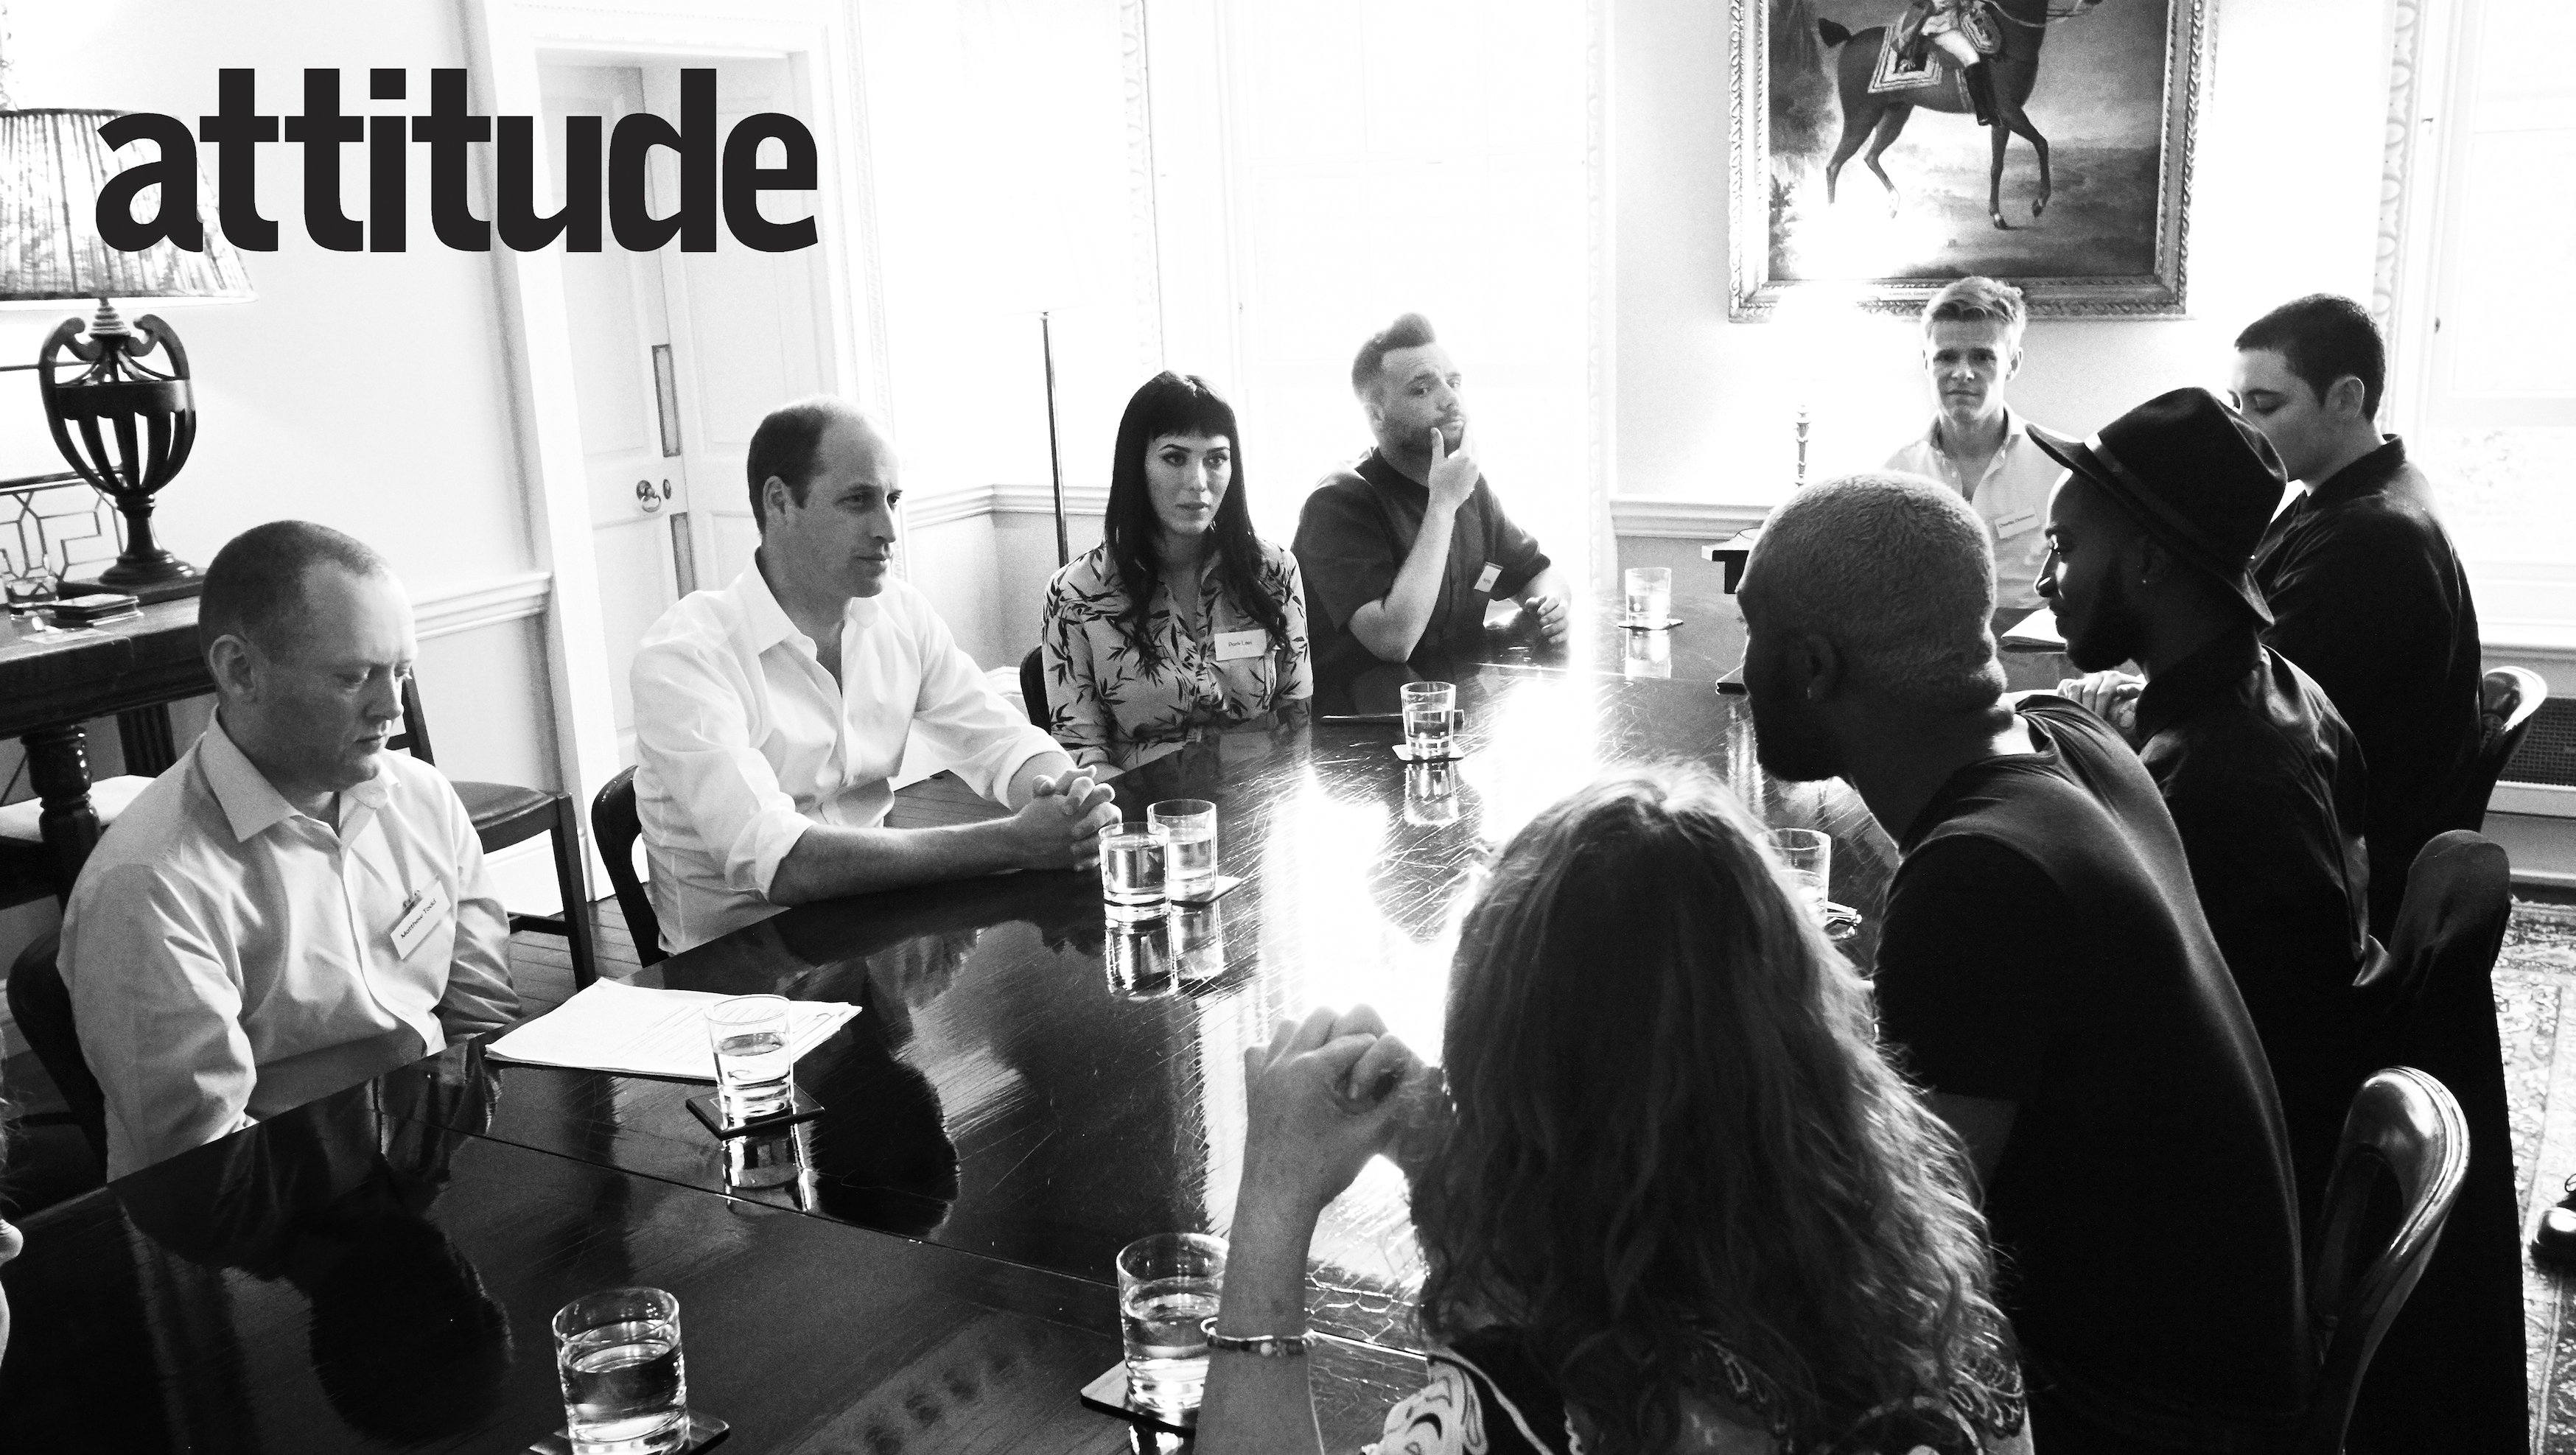 The Prince sat down with representatives of the LGBT community to talk about bulllying.